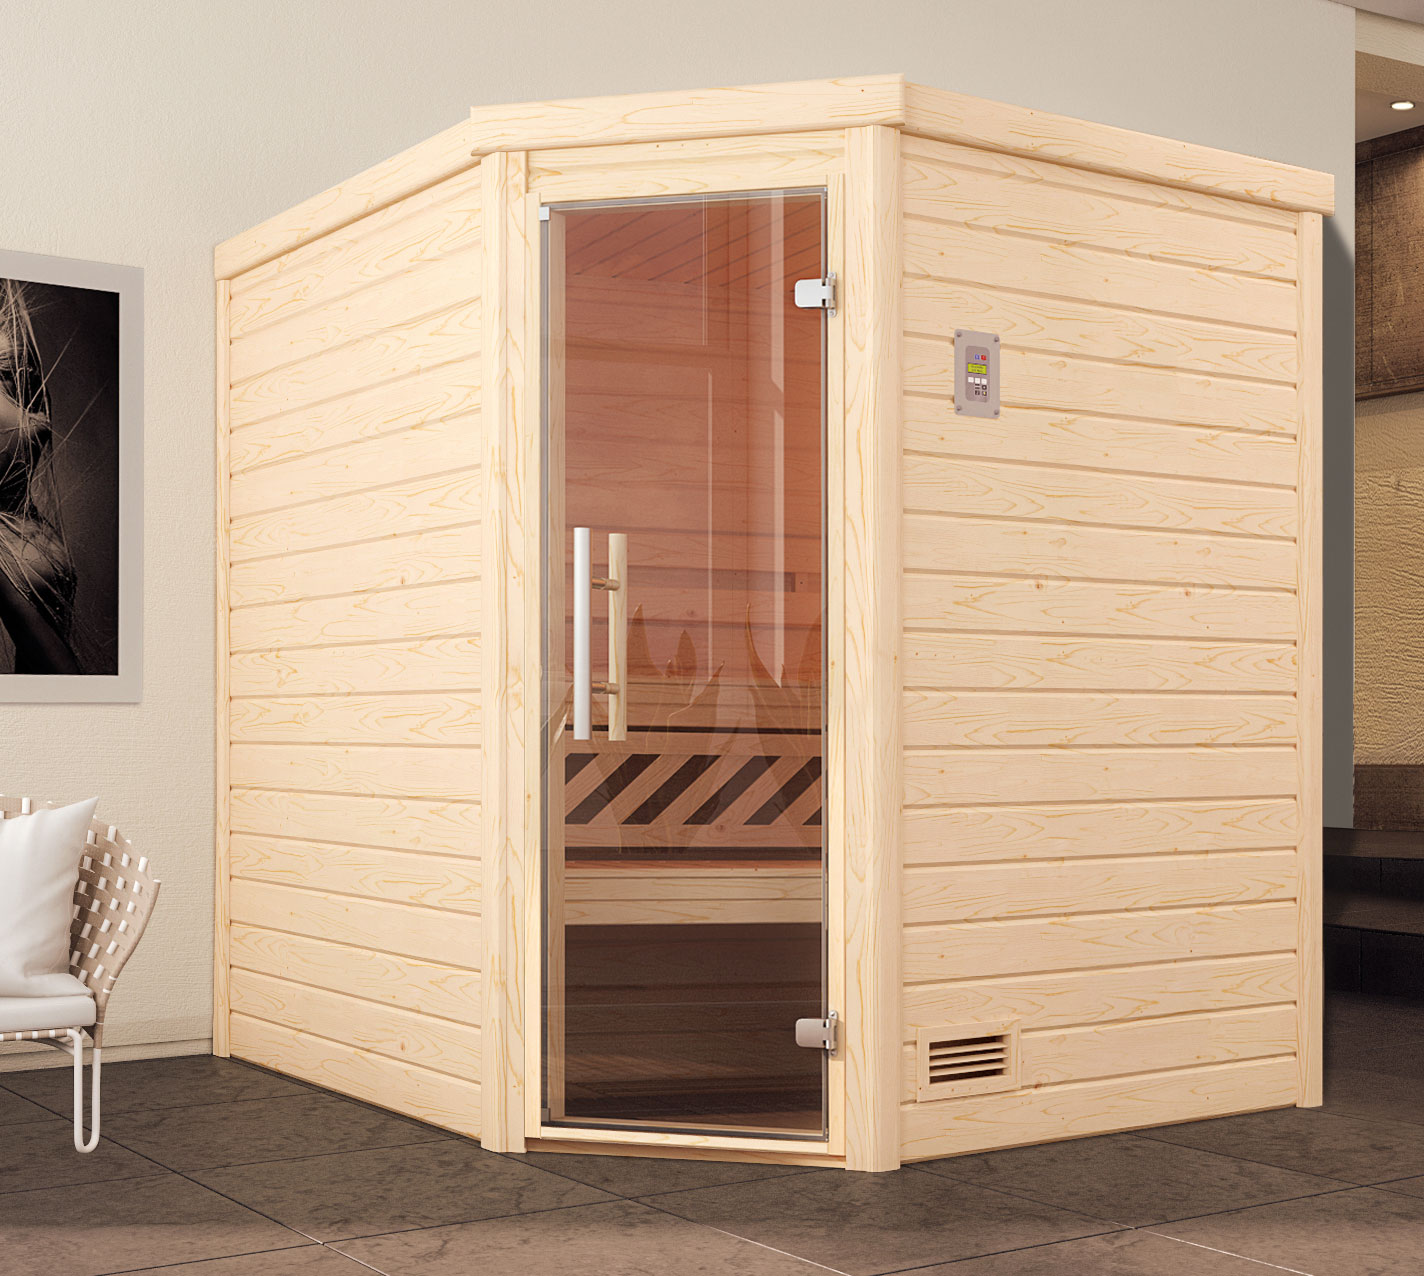 weka sauna 536 gt gr 1 massivholzsauna ohne saunaofen bei. Black Bedroom Furniture Sets. Home Design Ideas